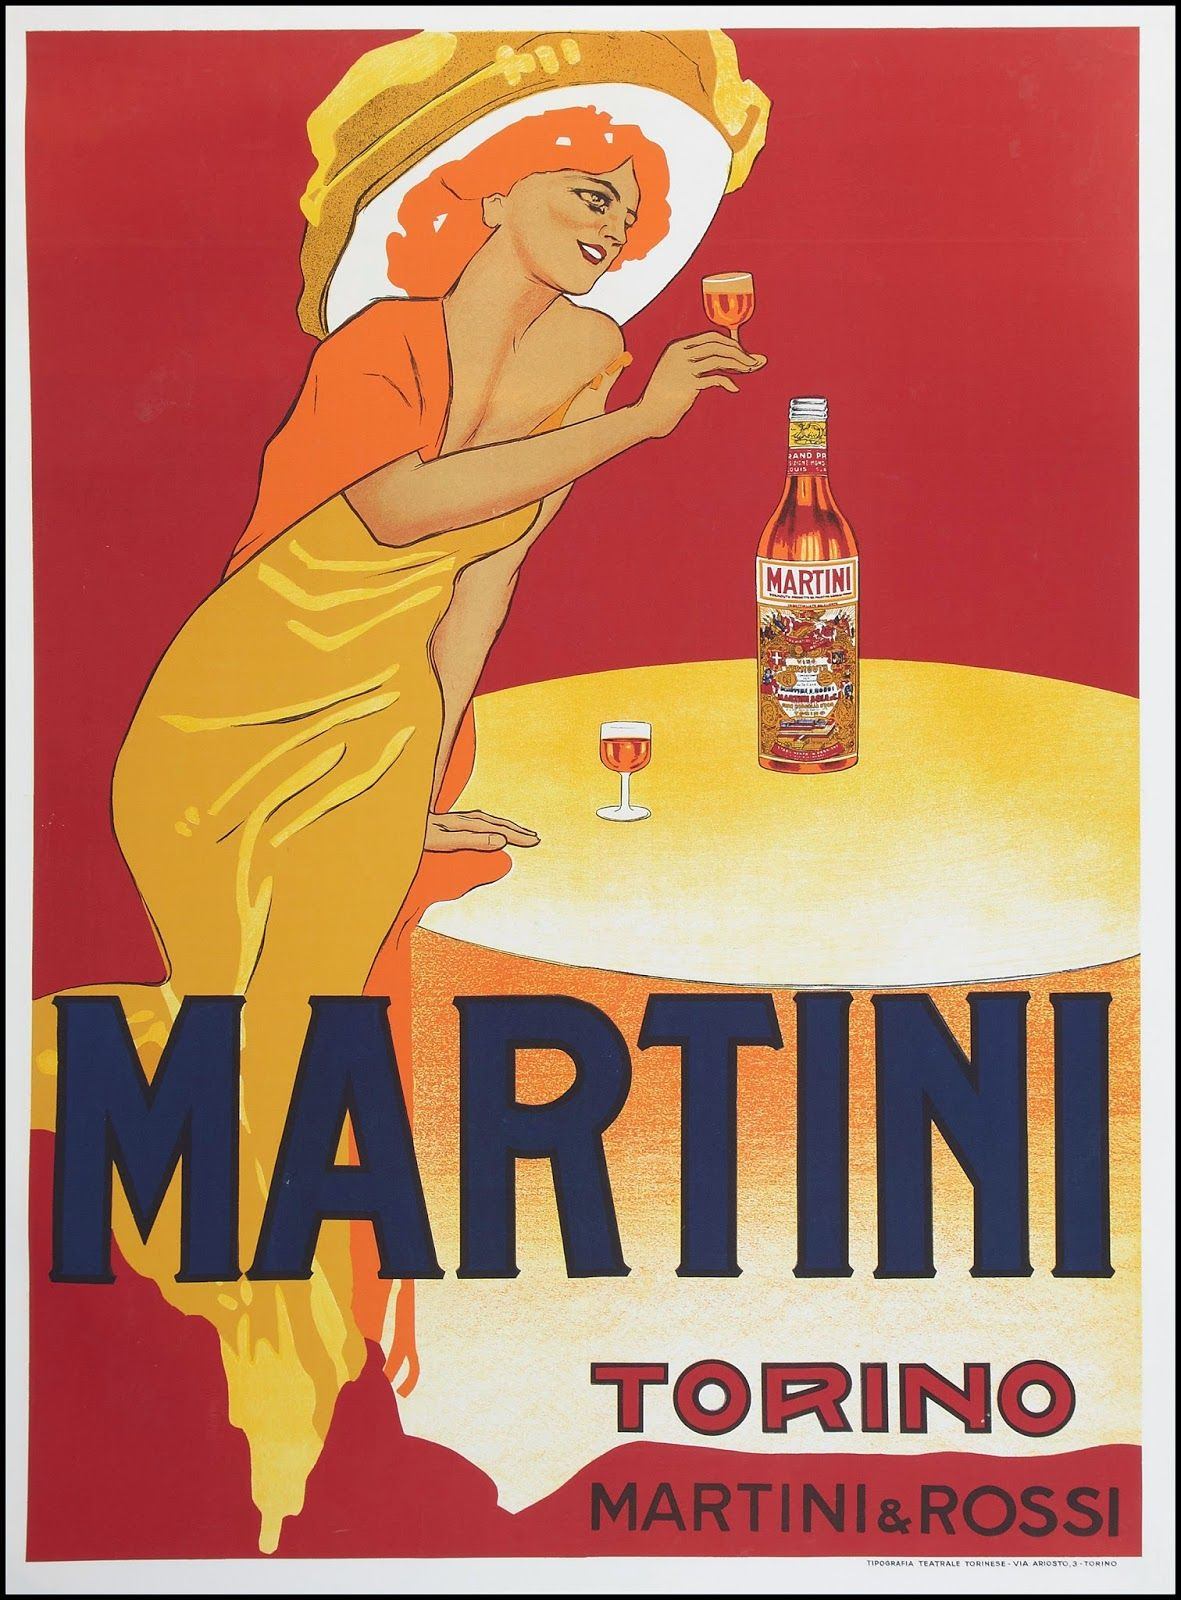 Pin By Melanie Sangalang On Vintage Posters Vintage French Posters Vintage Posters Vintage Italian Posters